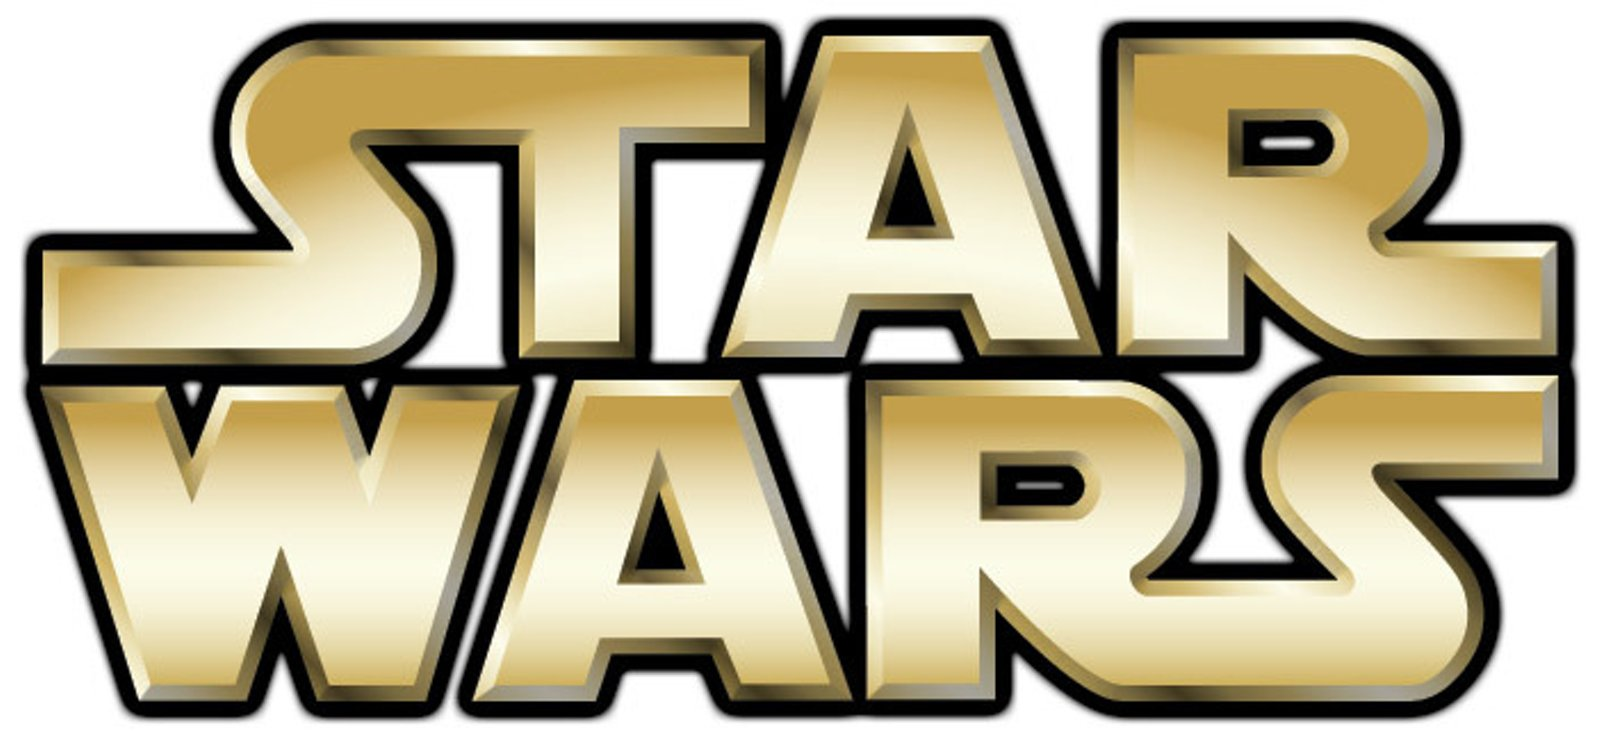 star wars logo #995